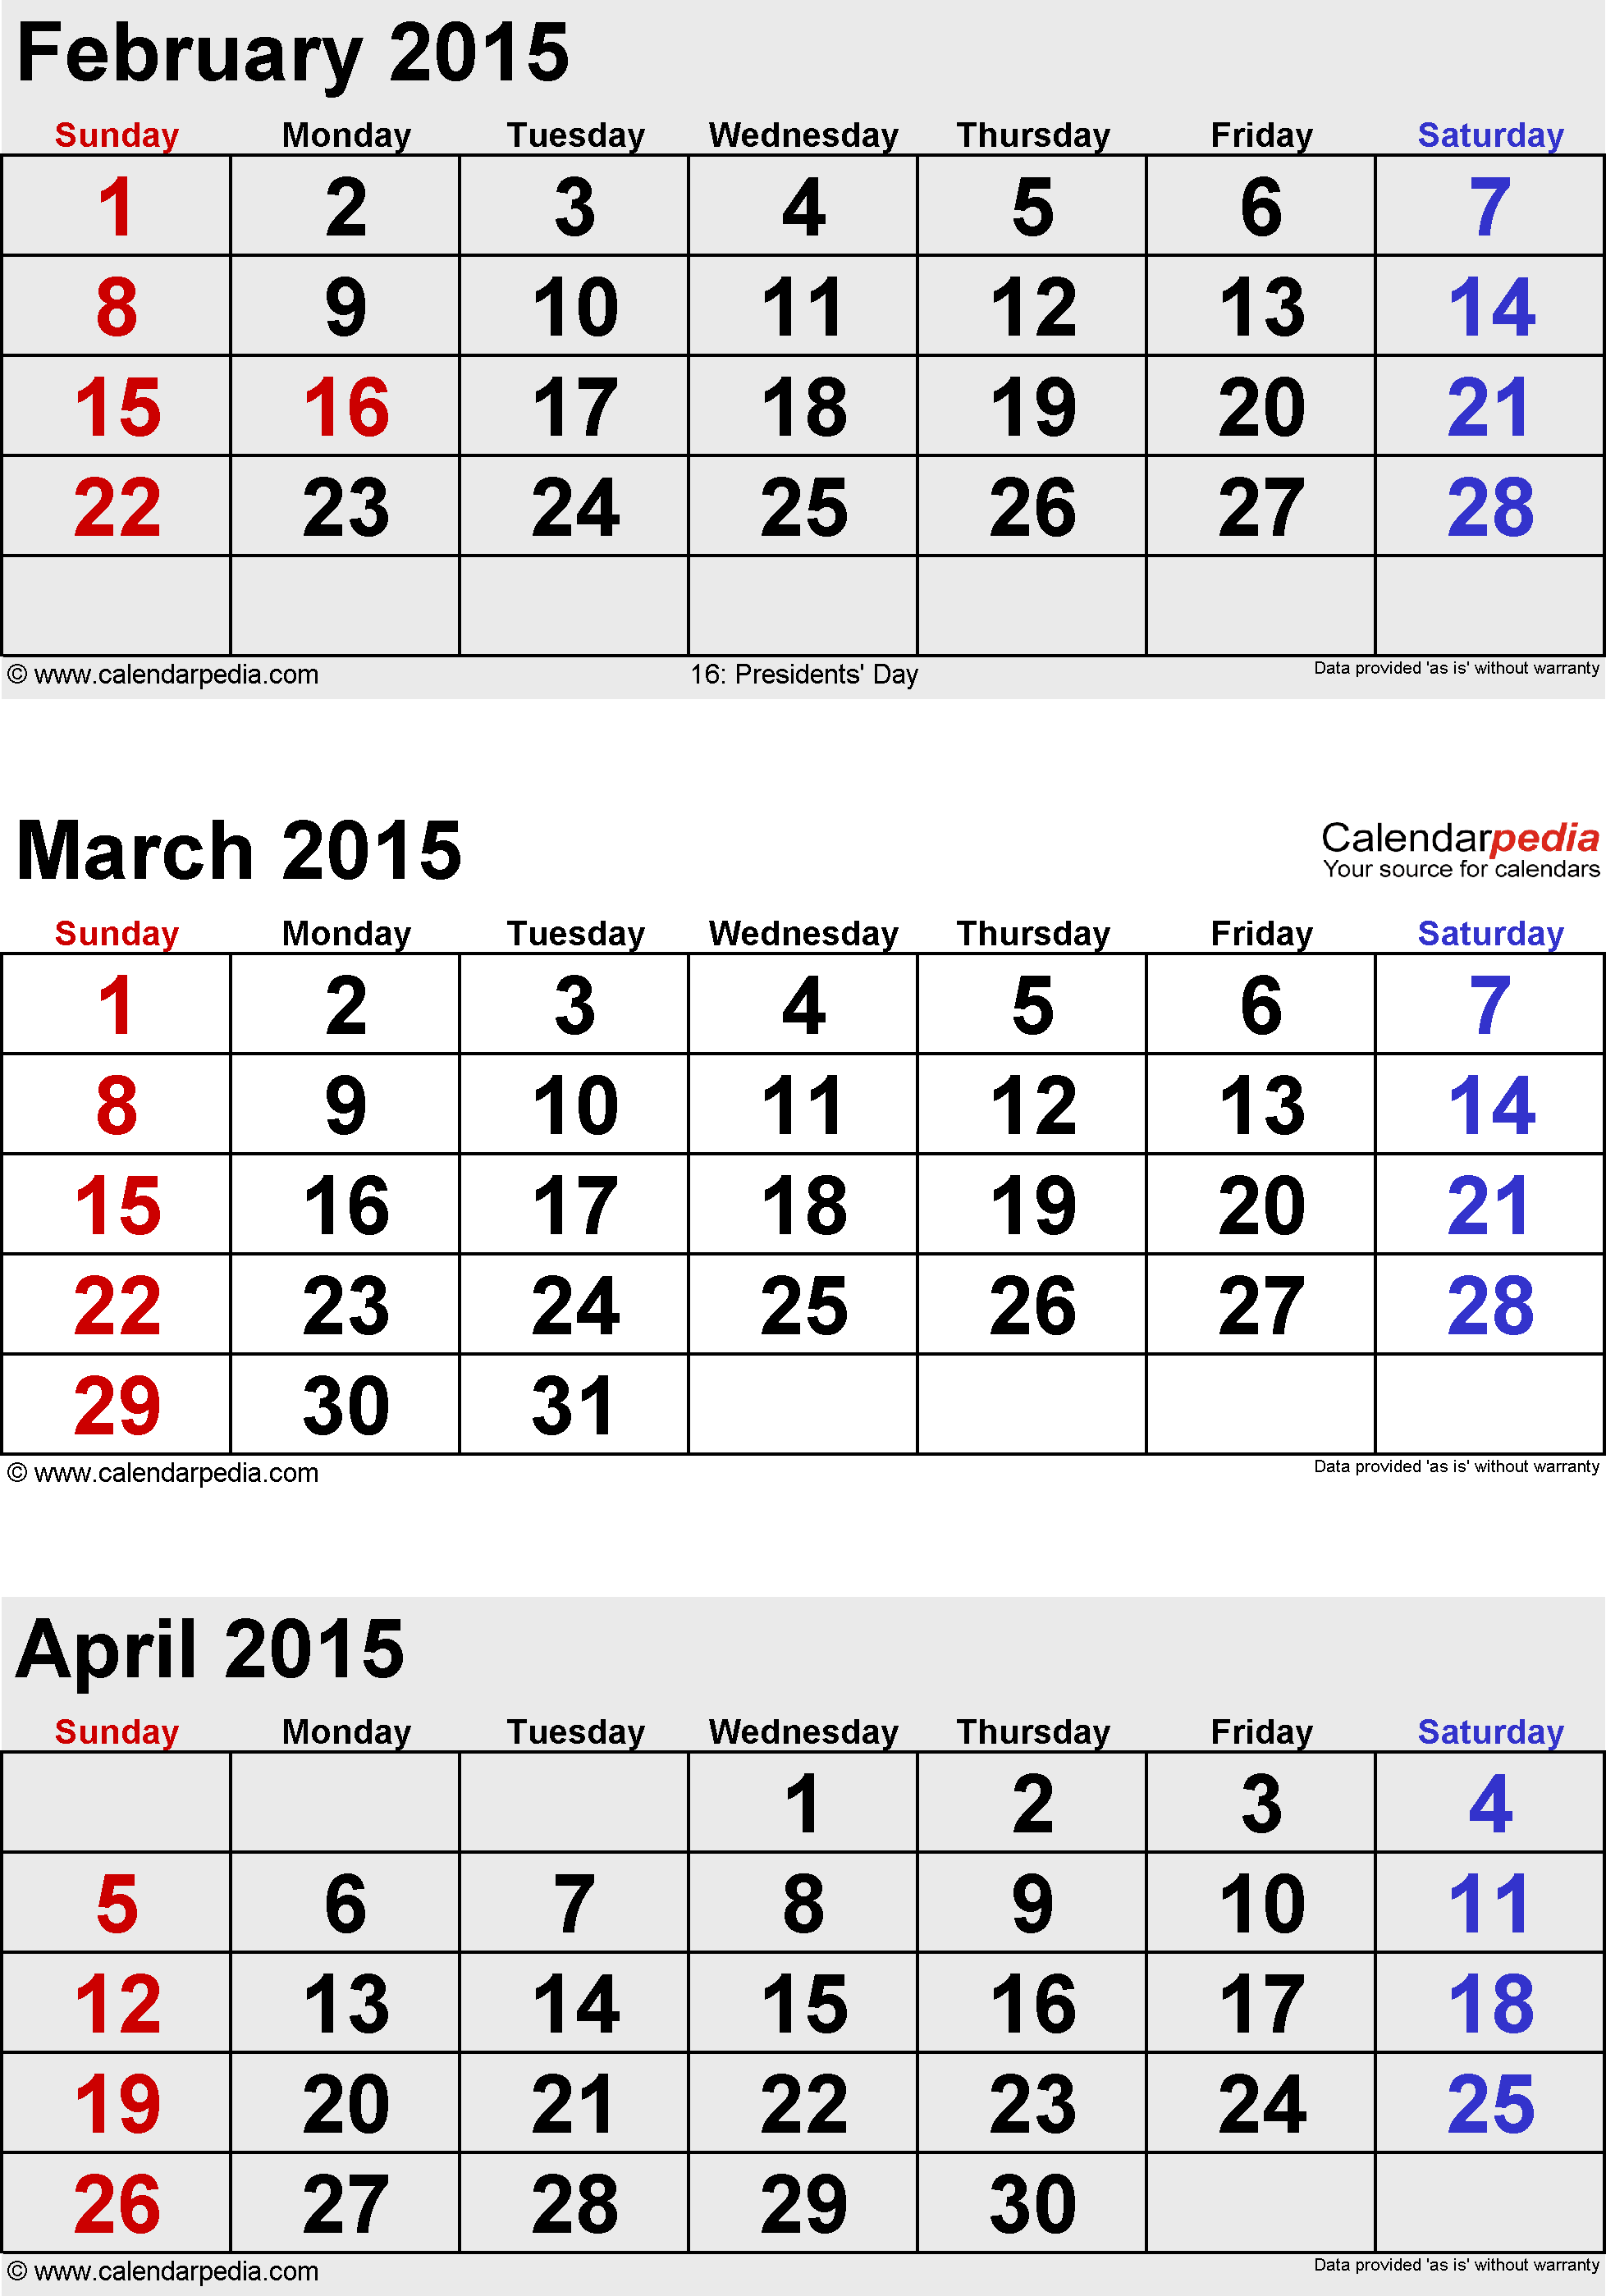 3 months calendar March/April/May 2015 in portrait format